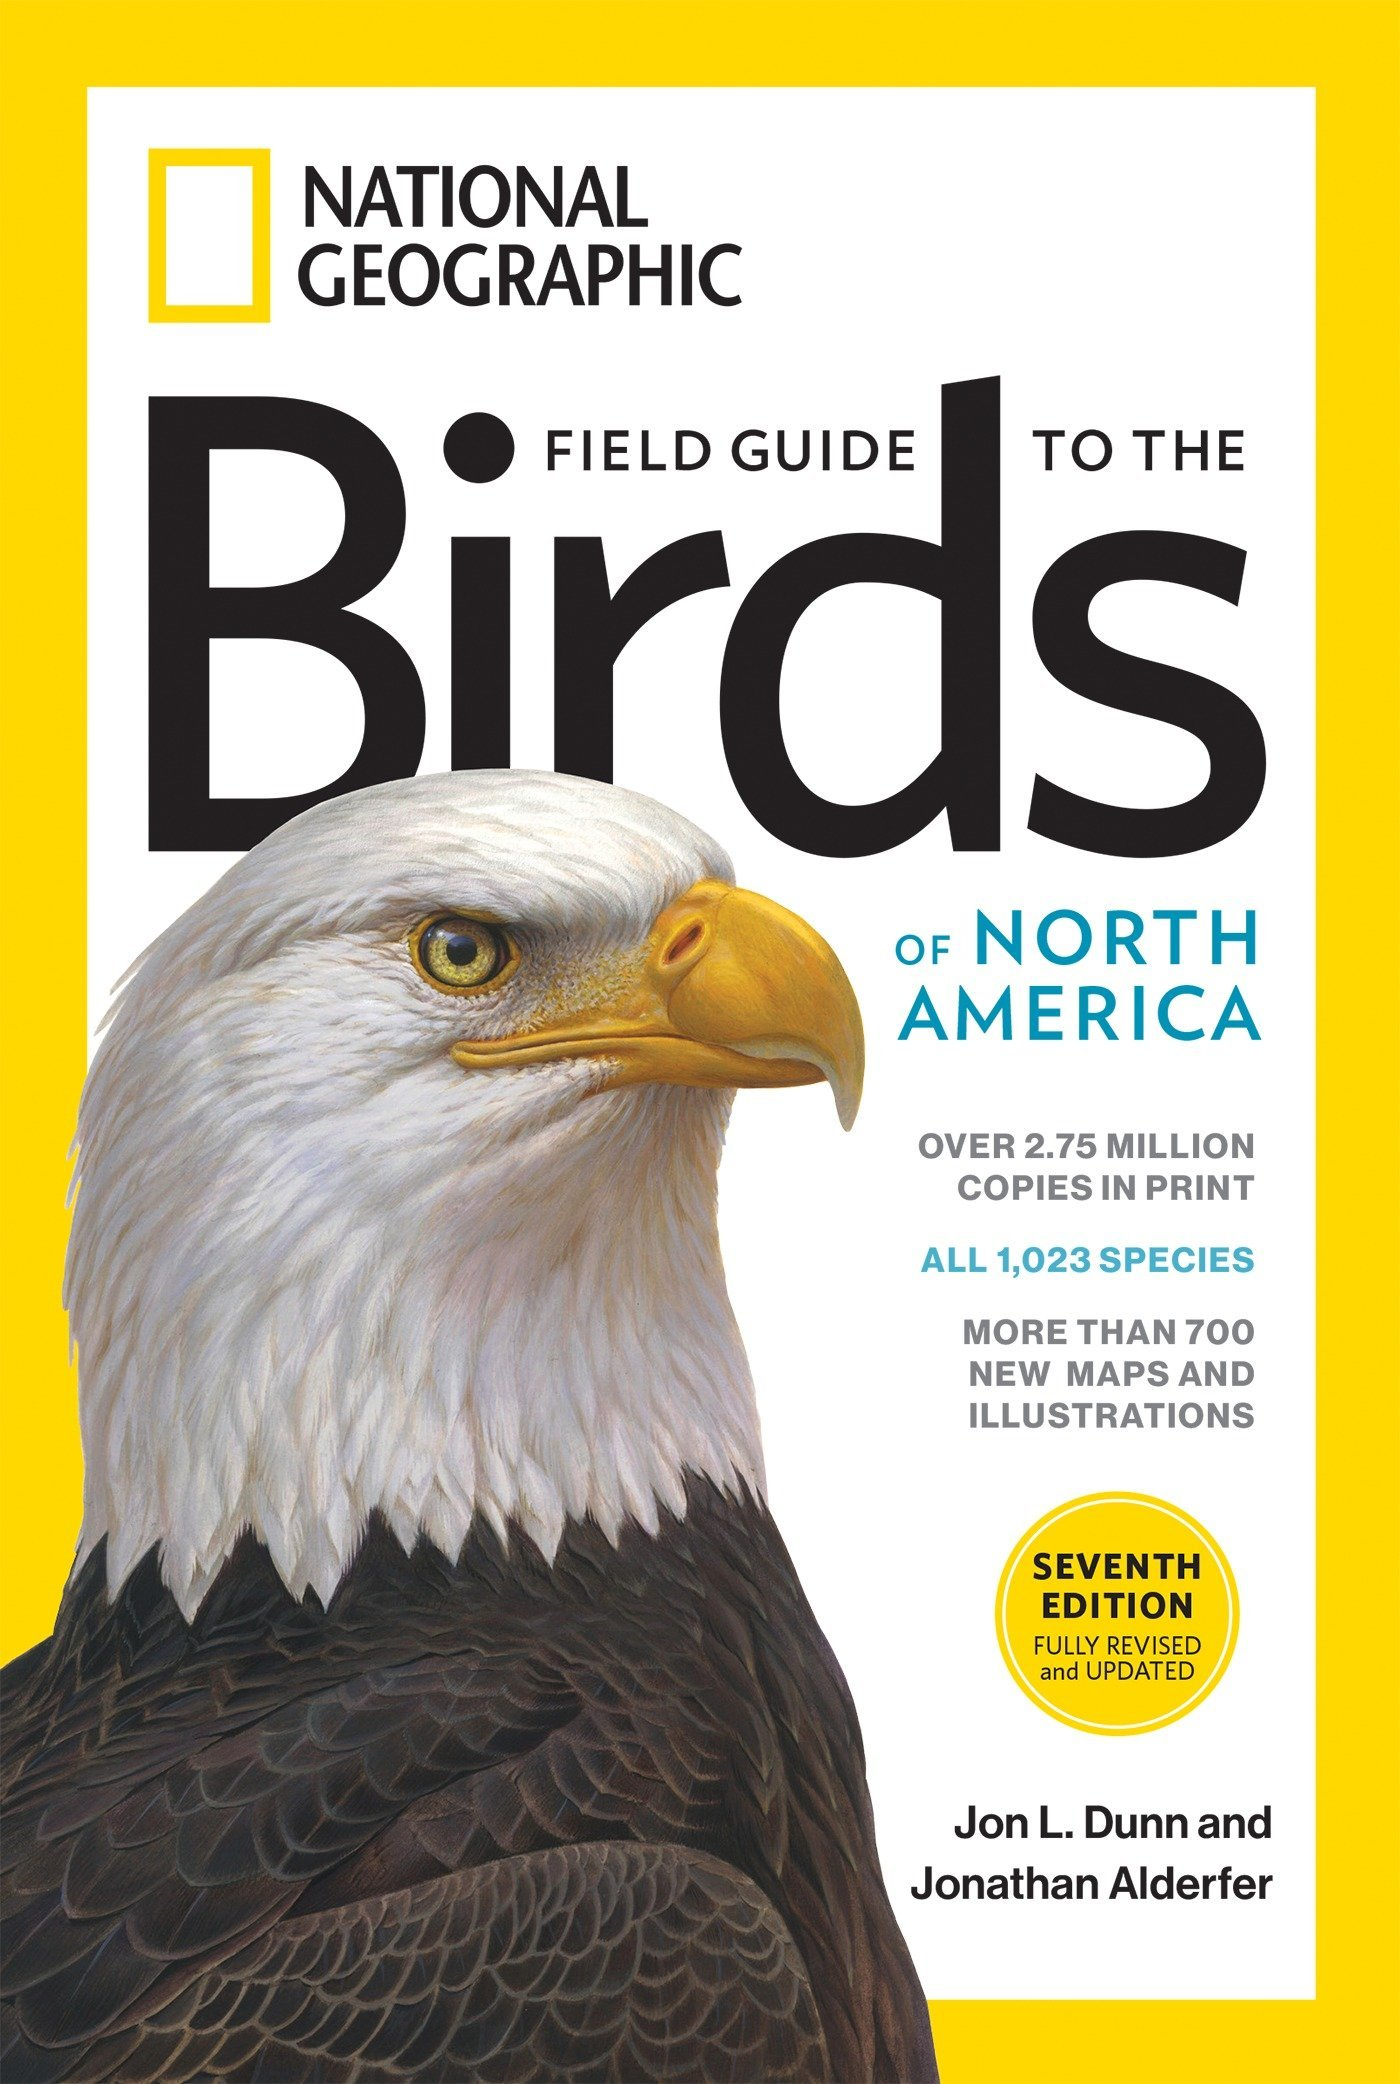 National Geographic Field Guide to the Birds of North America, 7th Edition:  Jon L. Dunn, Jonathan Alderfer: 9781426218354: Amazon.com: Books